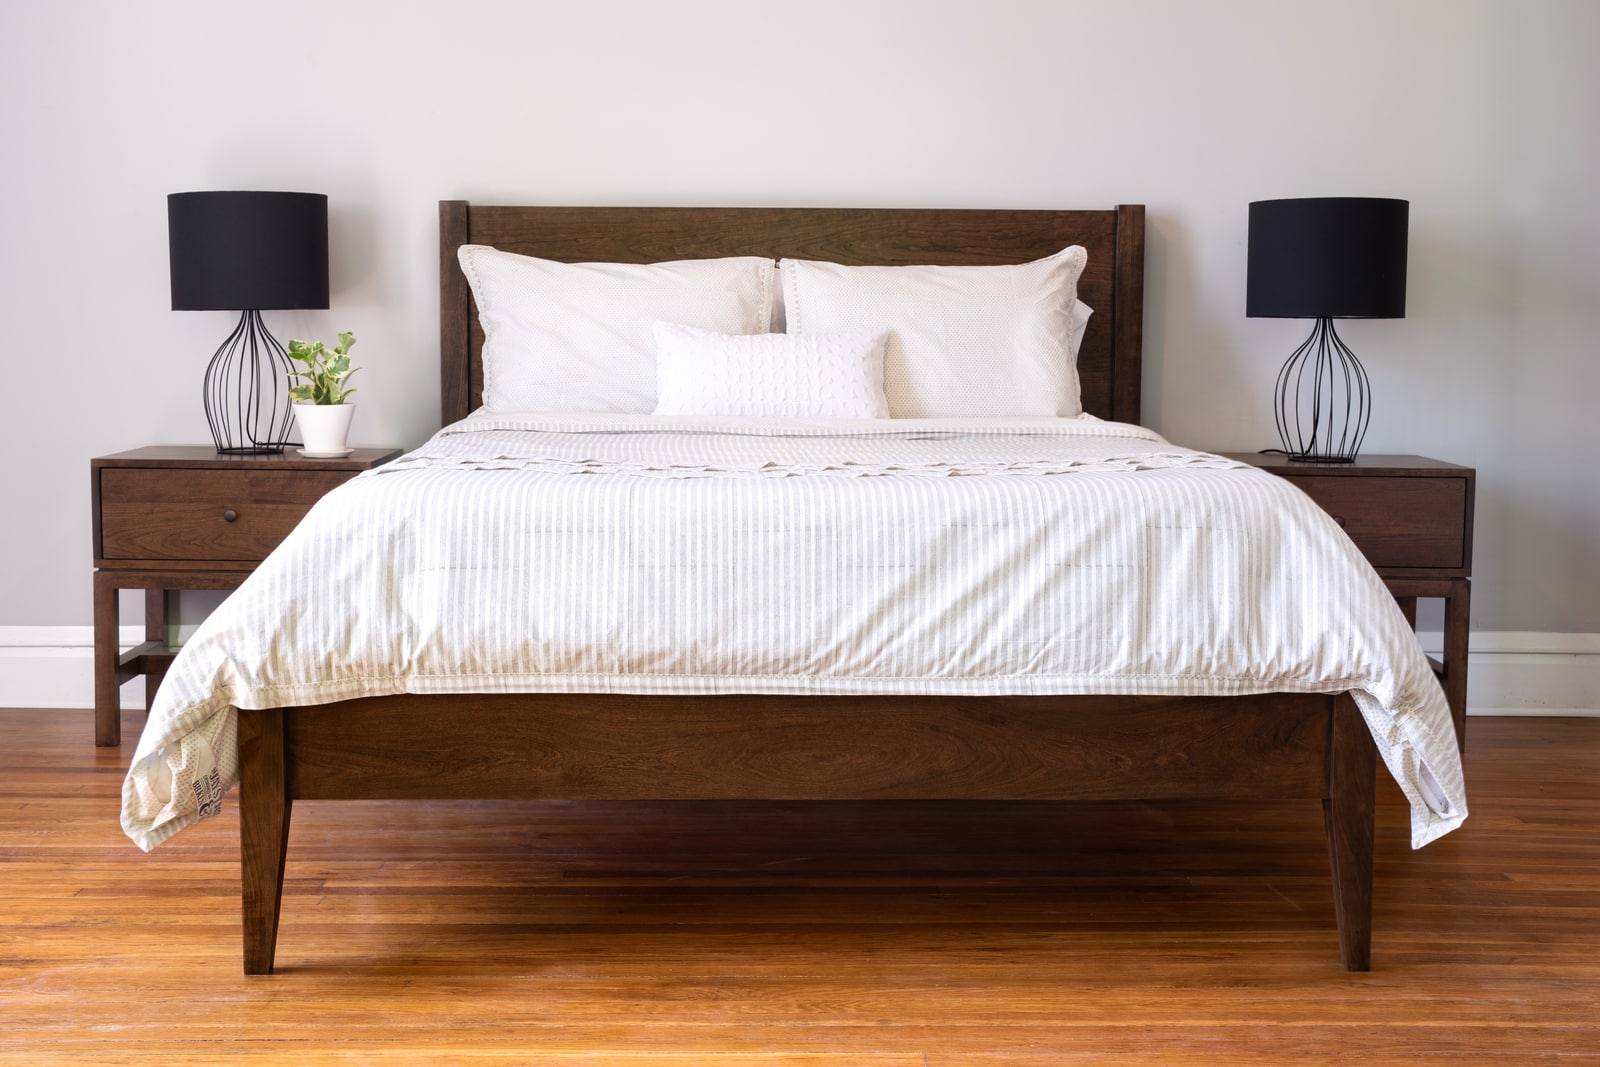 The Colby Bed by Unruh